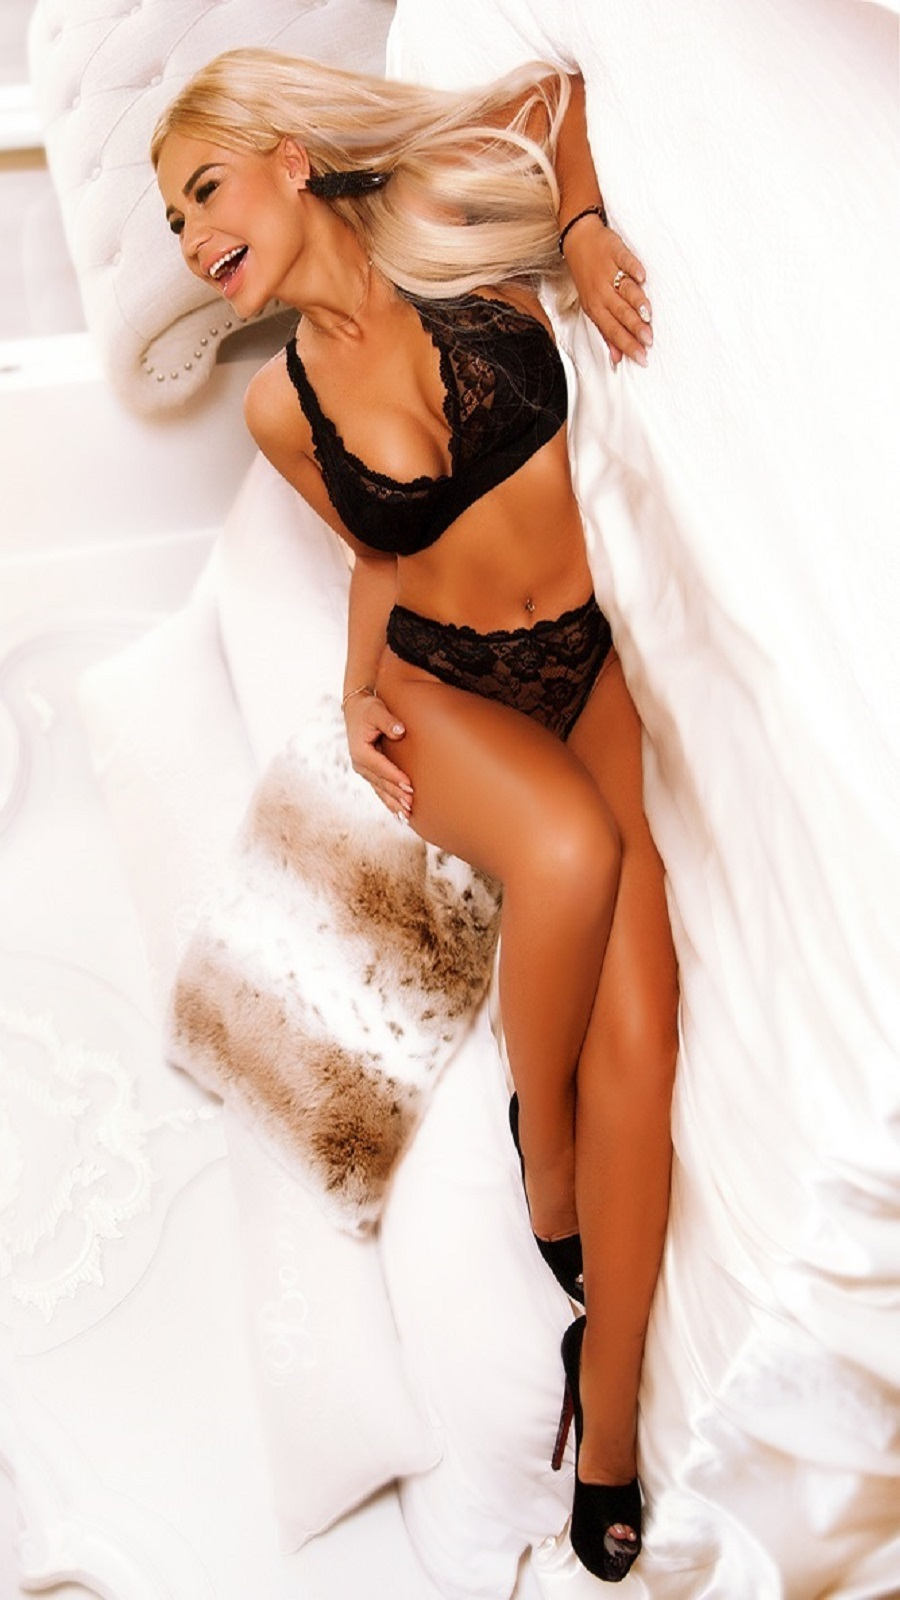 If you are looking for the perfect companion tonight give us a call on 07399733096 to book Shona for the best night of your life.